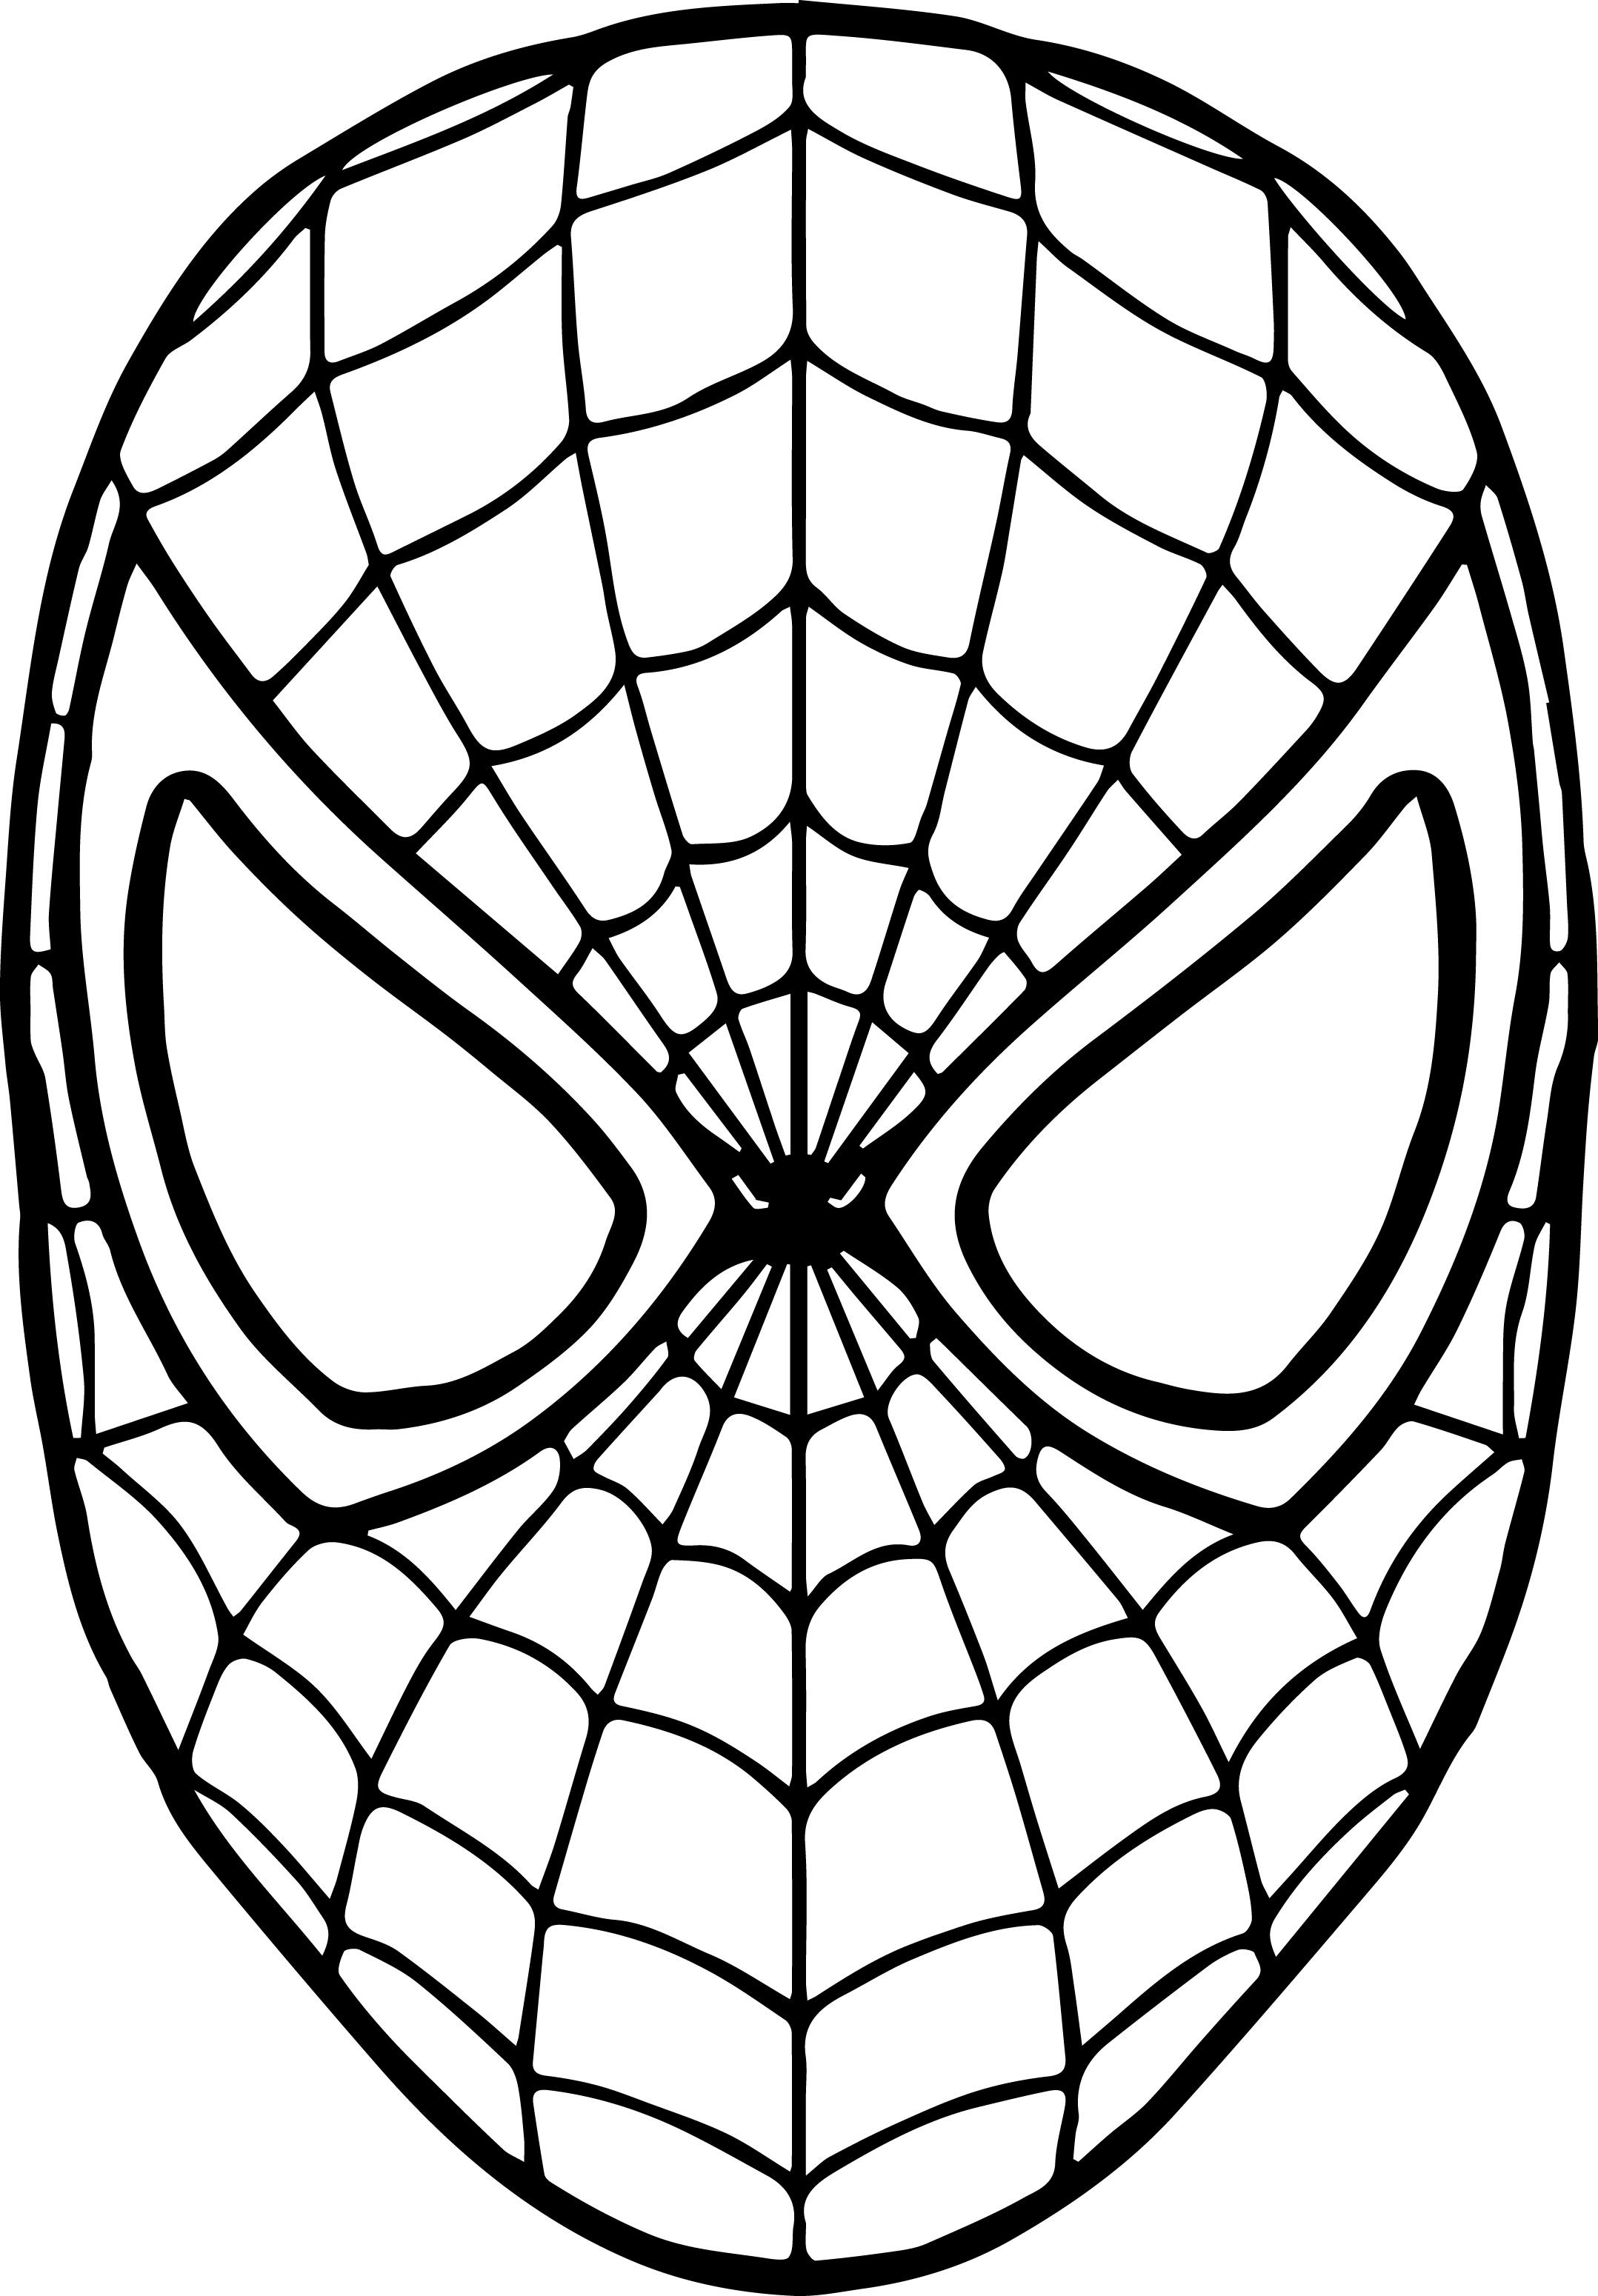 Spiderman Mask Coloring Page Spiderman Mask Spiderman Coloring Coloring Mask